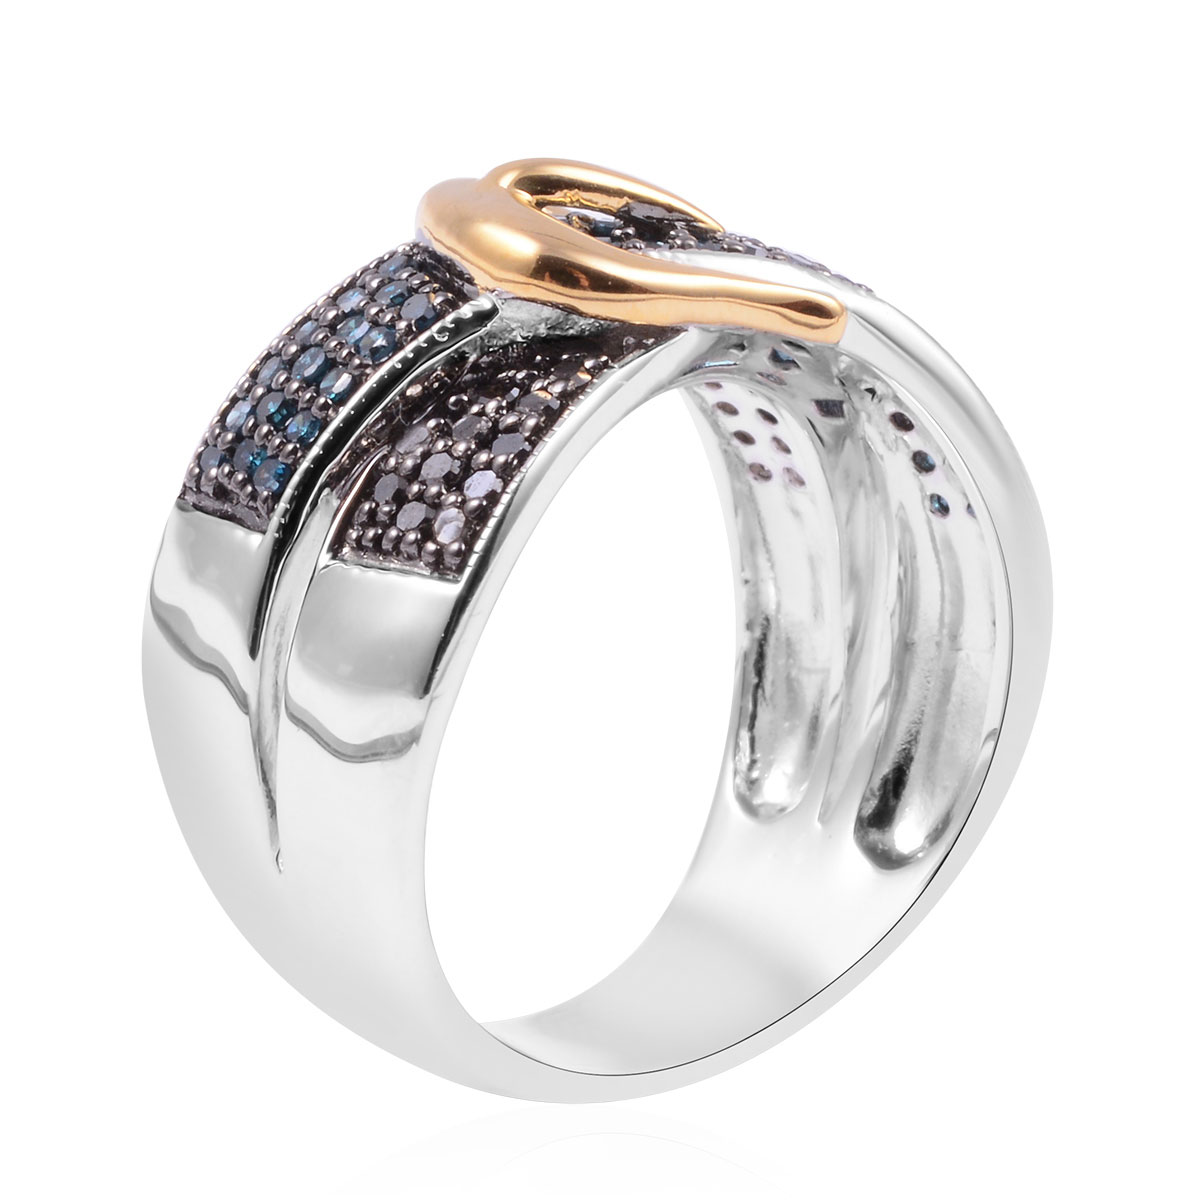 Black and Blue Diamond (IR) Buckle Ring in 14K YG & Platinum Over Sterling Silver (Size 5.0) 0.50 ctw